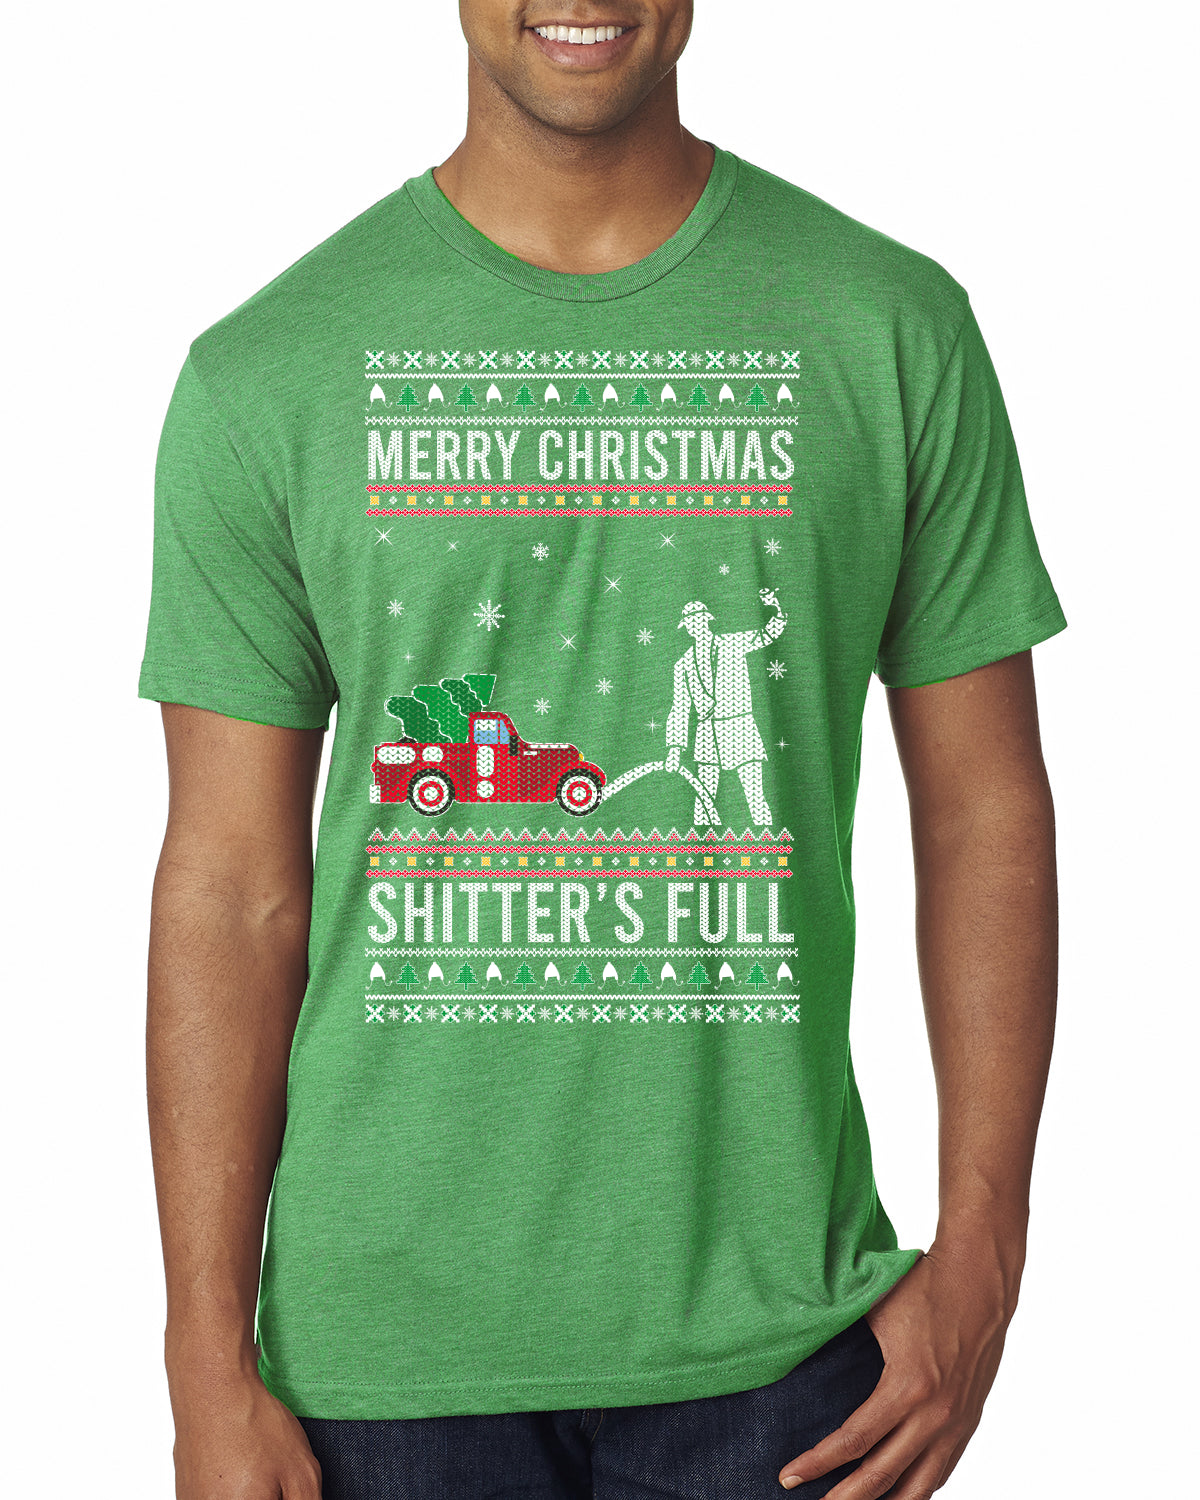 Merry Christmas Shitter's Full Christmas Vacation Ugly Christmas Sweater Mens Premium Tri Blend T-Shirt